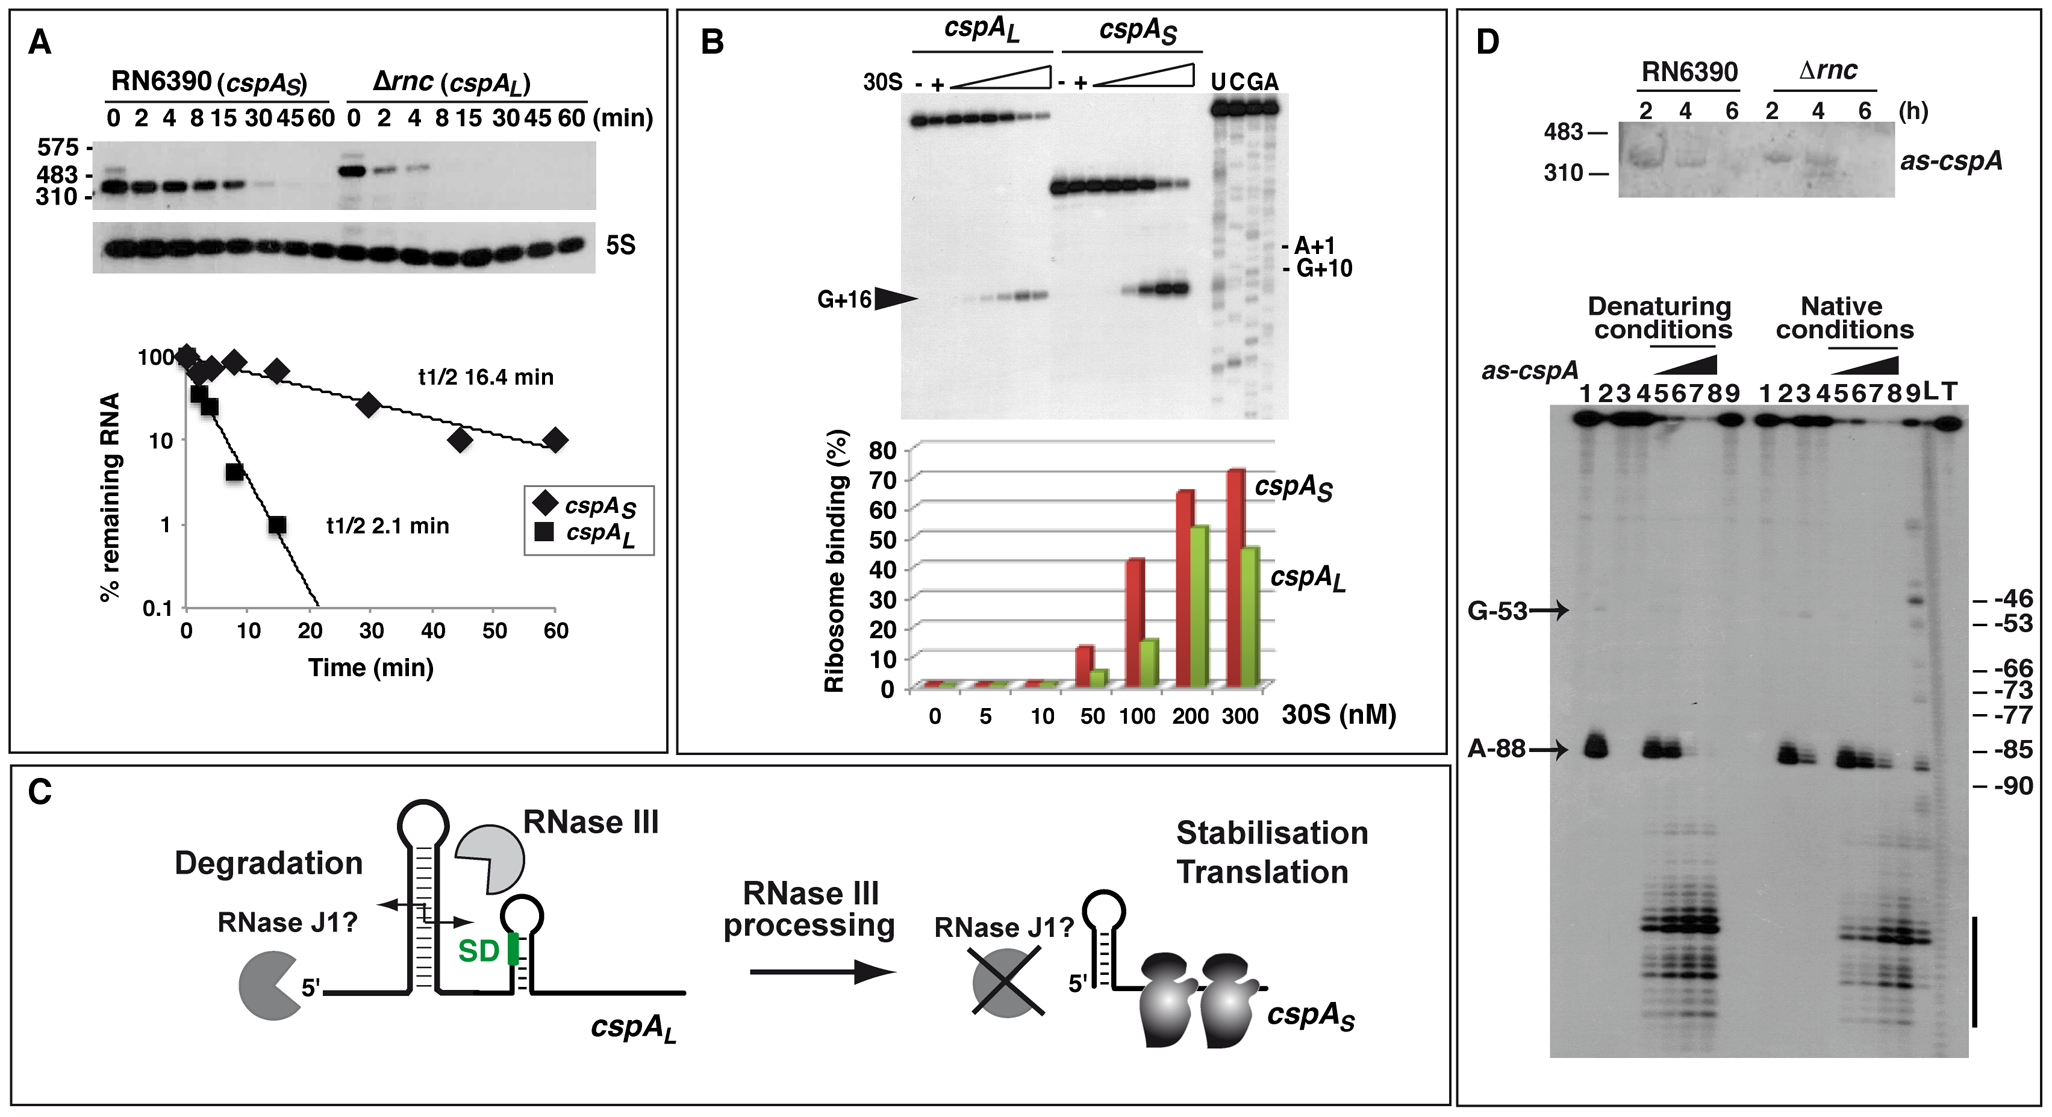 RNase III–dependent processing stabilizes <i>cspA</i> mRNA and enhances translation.